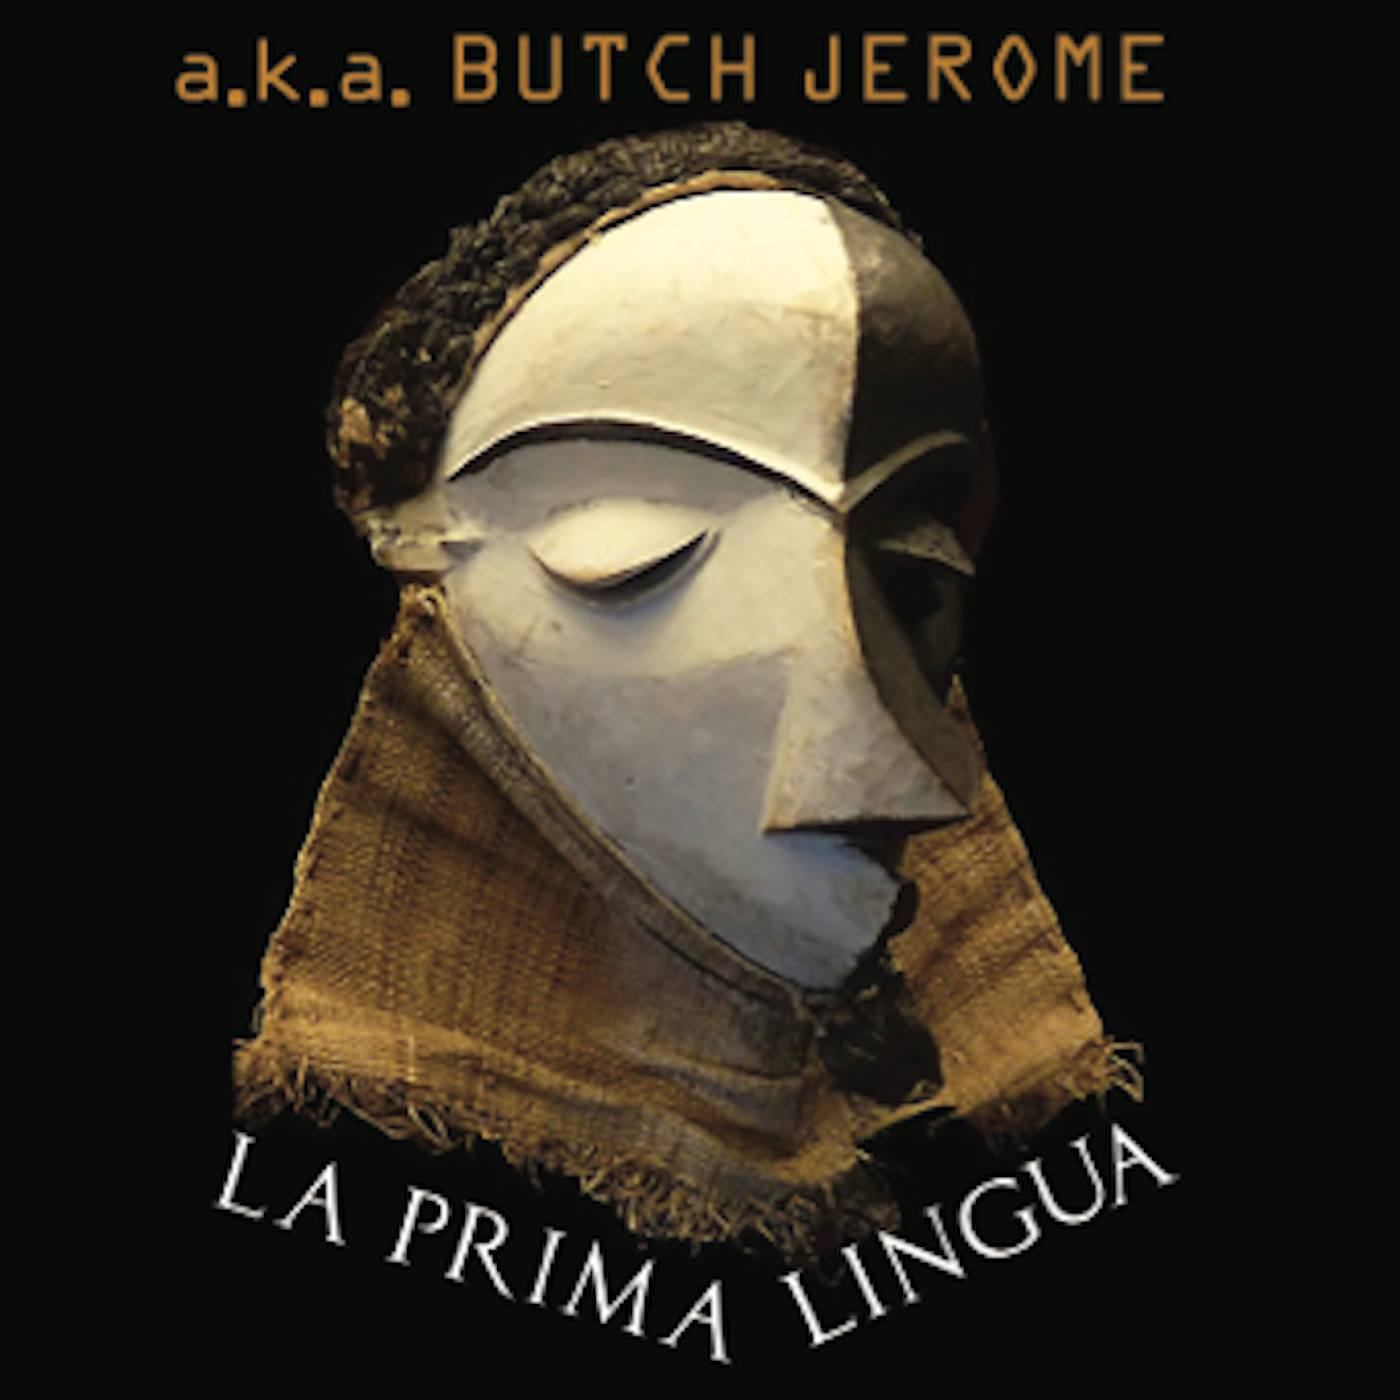 Percussion Reimagined By Collaborative Band a.k.a BUTCH JEROME